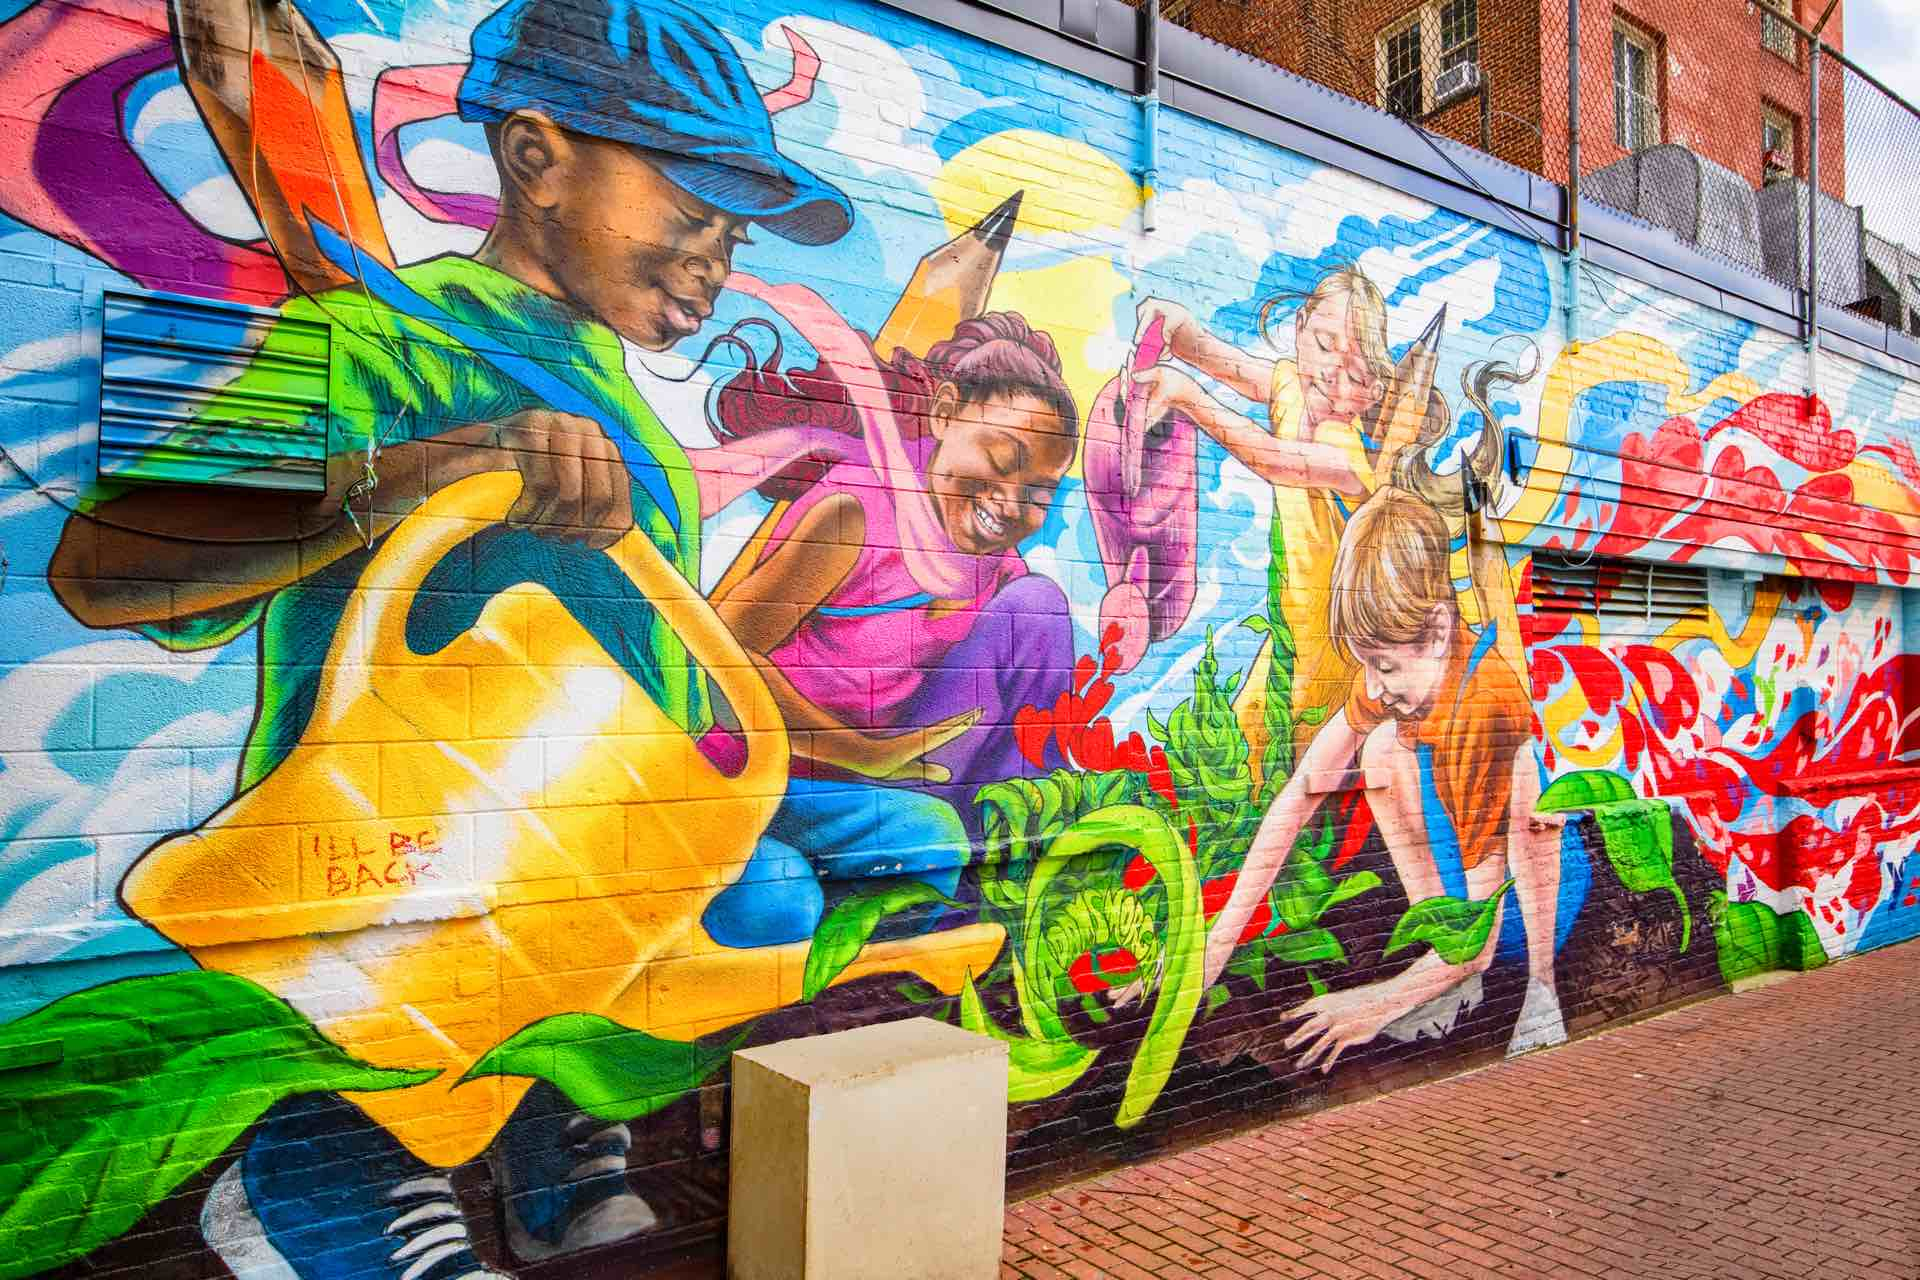 Adams Morgan is home to community art and engagement